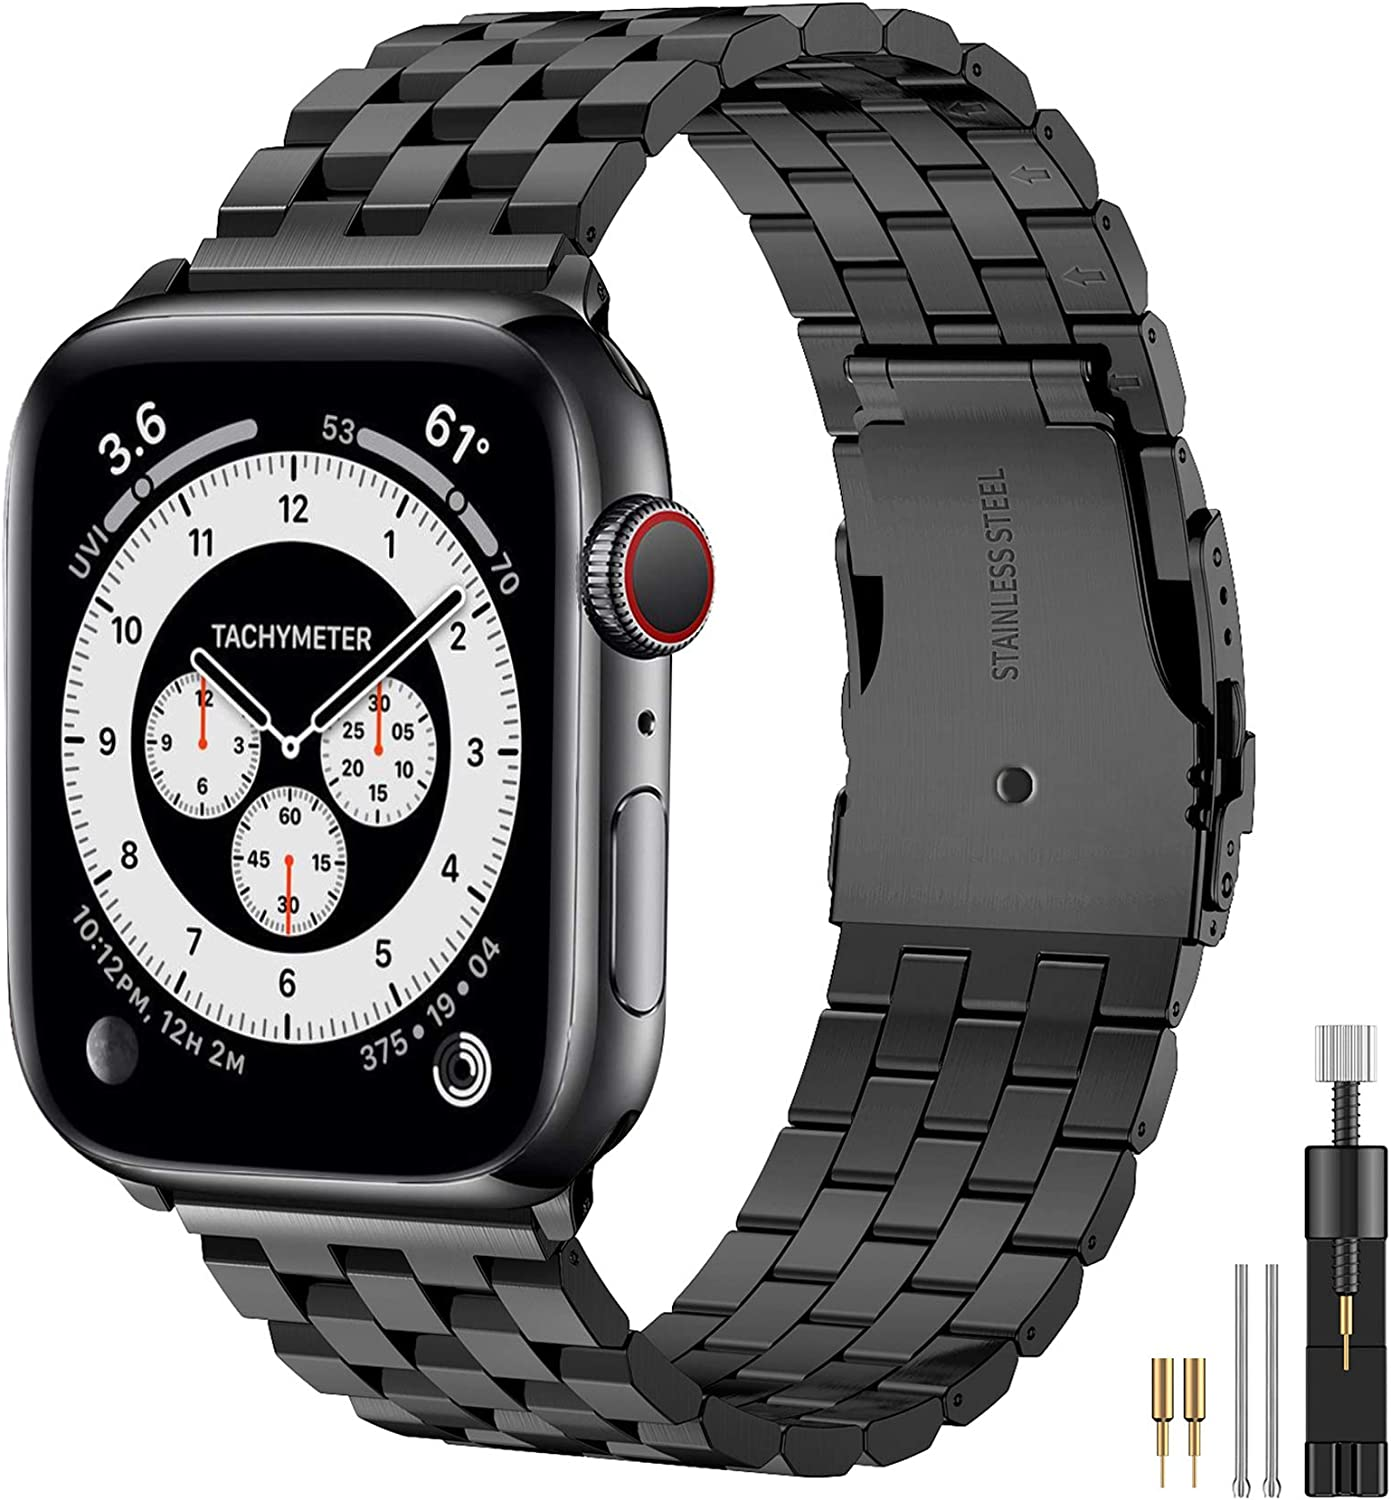 Hallsen Compatible with Apple Watch Band Series 6/5/4/SE 44mm 40mm Series3/2/1 42mm 38mm , Upgraded Version Solid Stainless Steel Metal Strap for iWatch Bands for Men Women